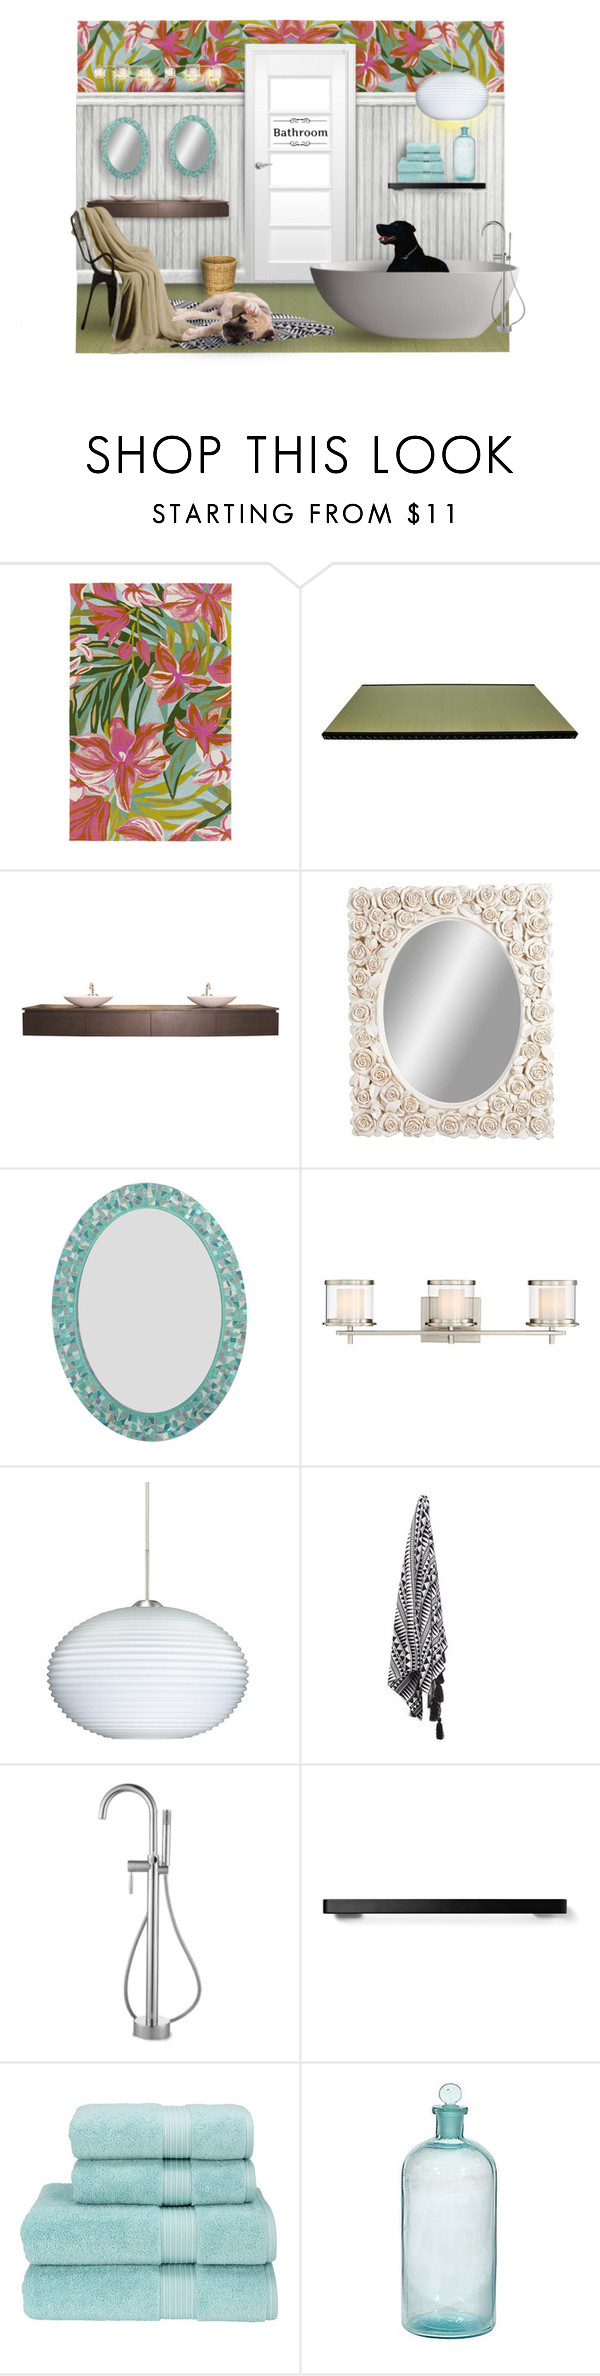 """:)Aww...do I have to take a bath?"" by maison-de-forgeron ❤ liked on Polyvore featuring interior, interiors, interior design, home, home decor, interior decorating, Surya, XVL, Laurence Llewelyn-Bowen and Possini Euro Design"